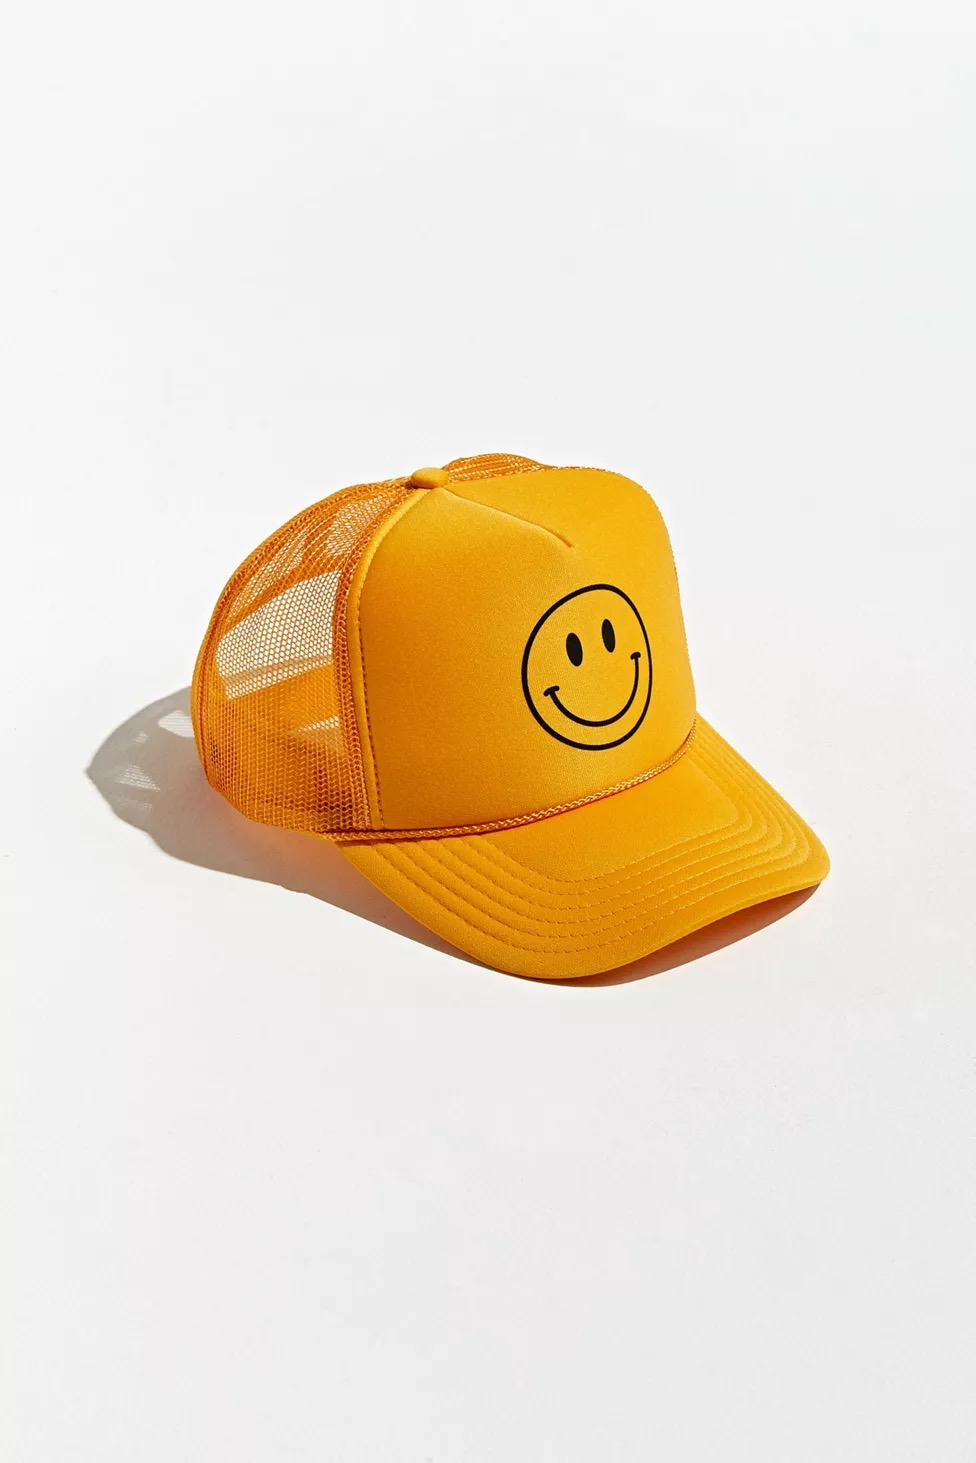 Urban Outfitter's smile trucker hat